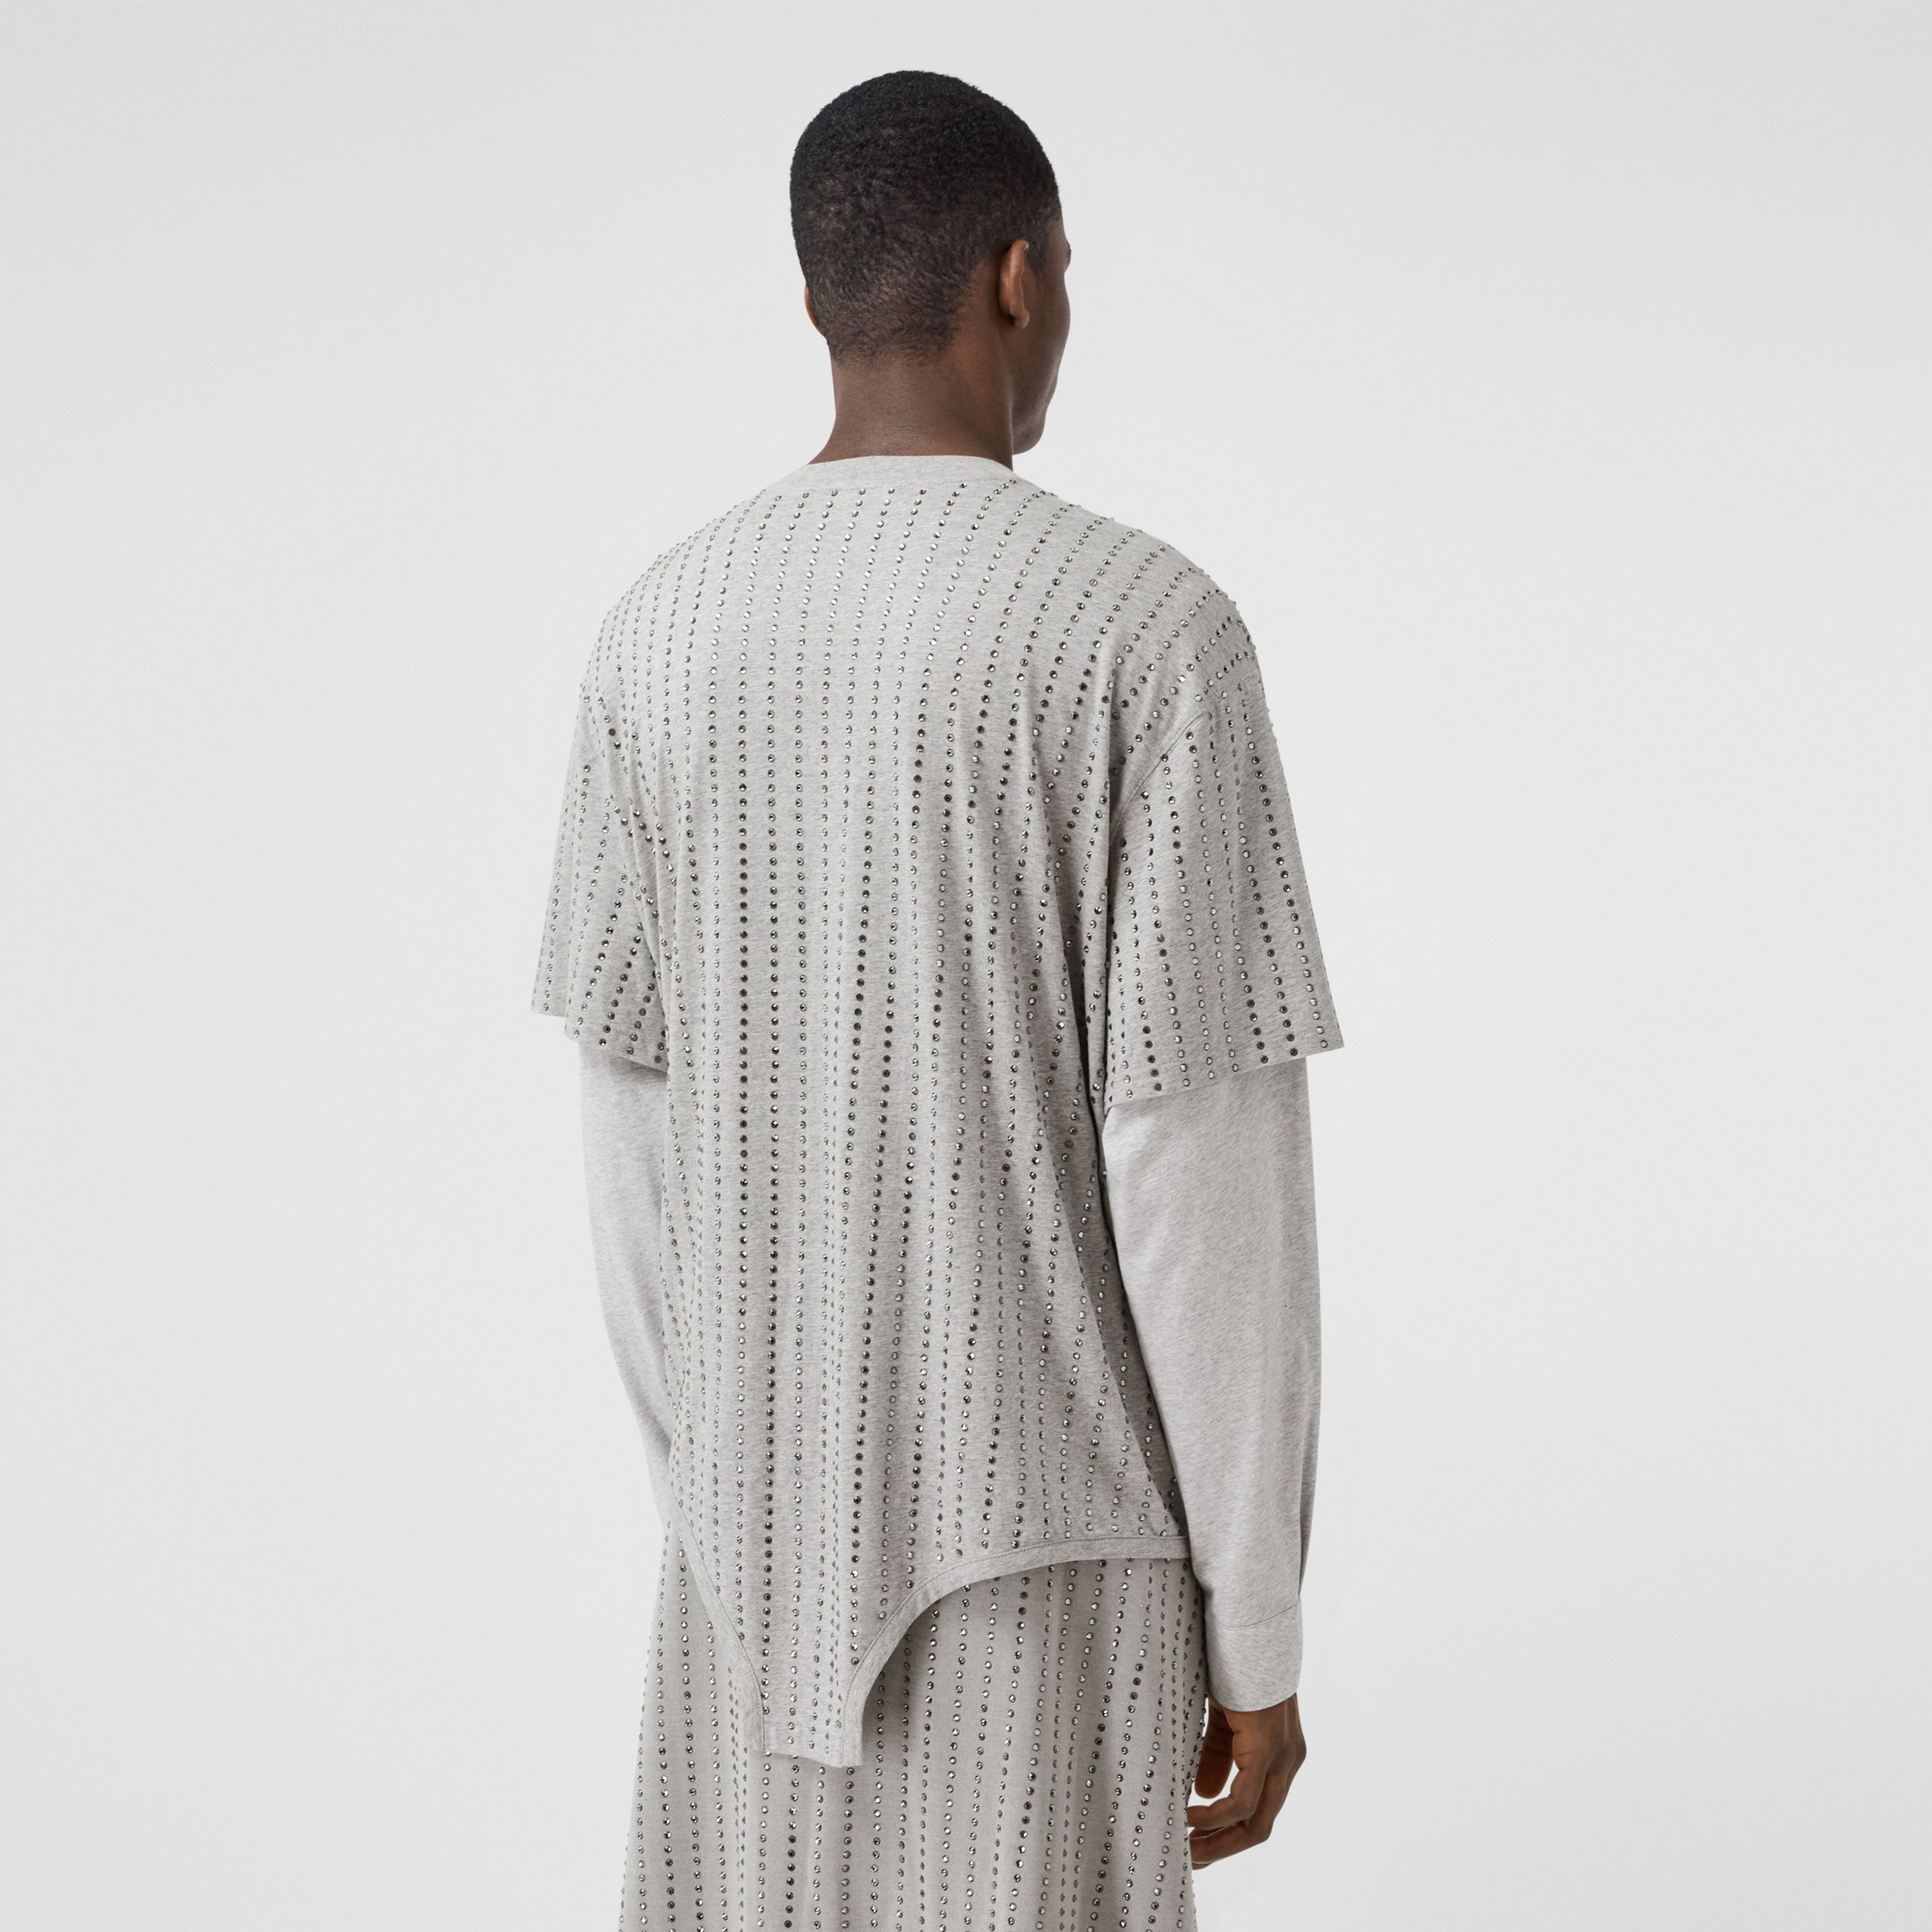 Cut-out Hem Crystal Pinstriped Cotton Oversized T-shirt in Cloud Grey - Men | Burberry - 3